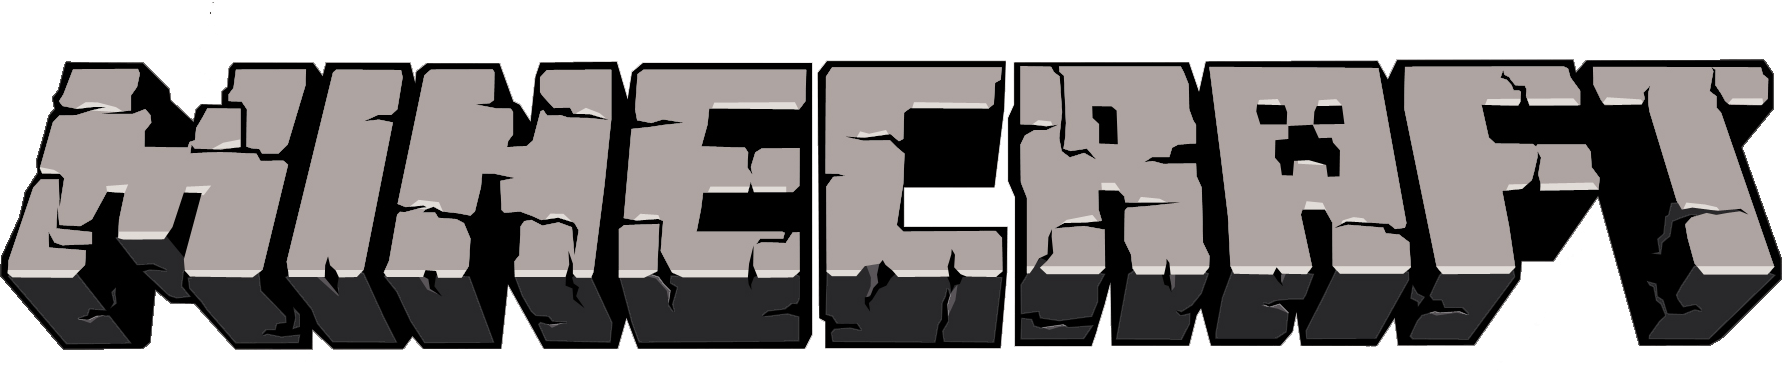 Minecraft Clipart black and white